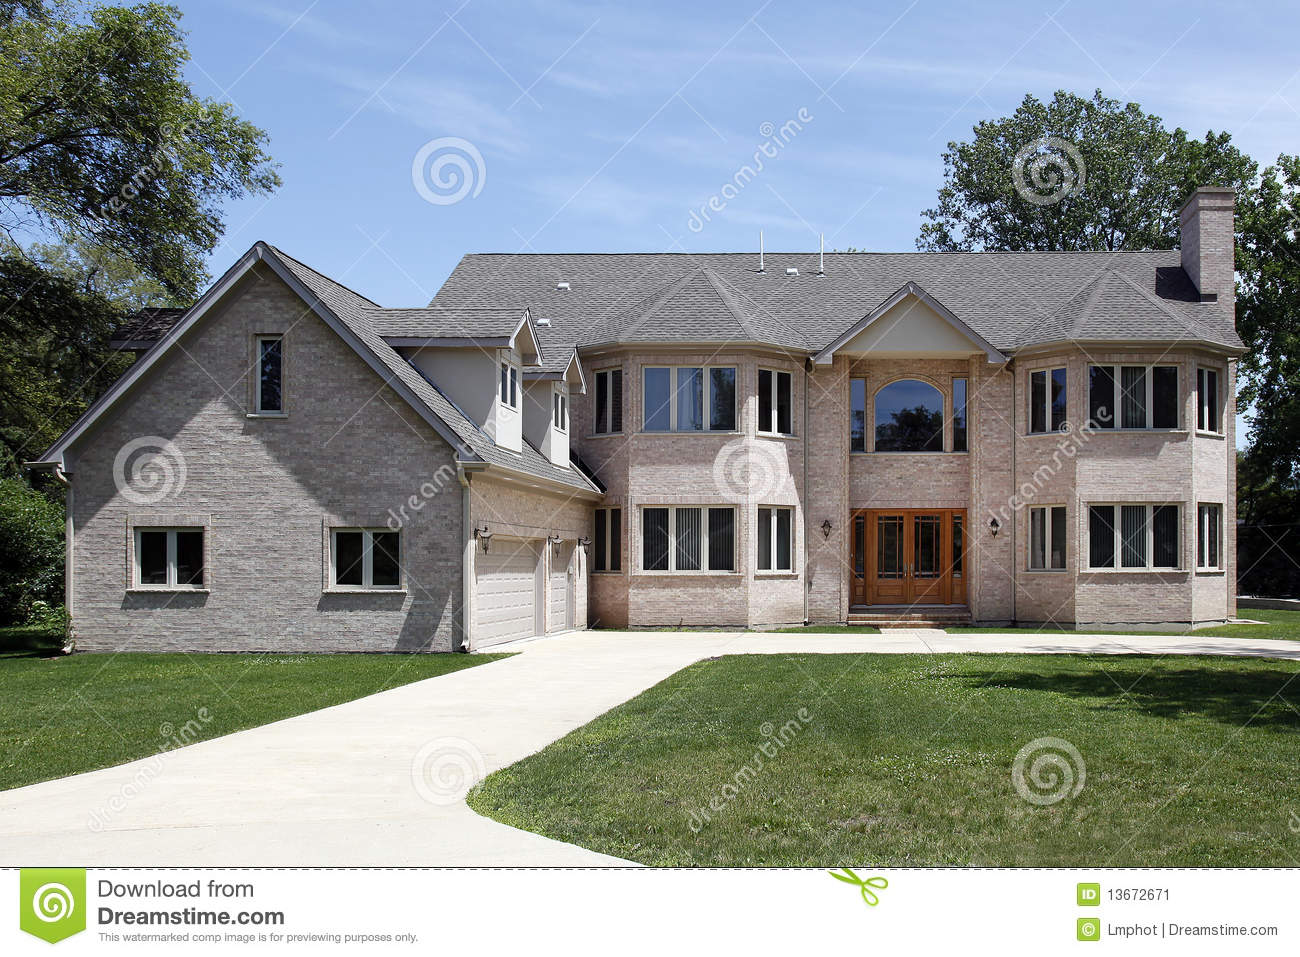 large brick home with three car garage stock image image large house with three car garage royalty free stock image